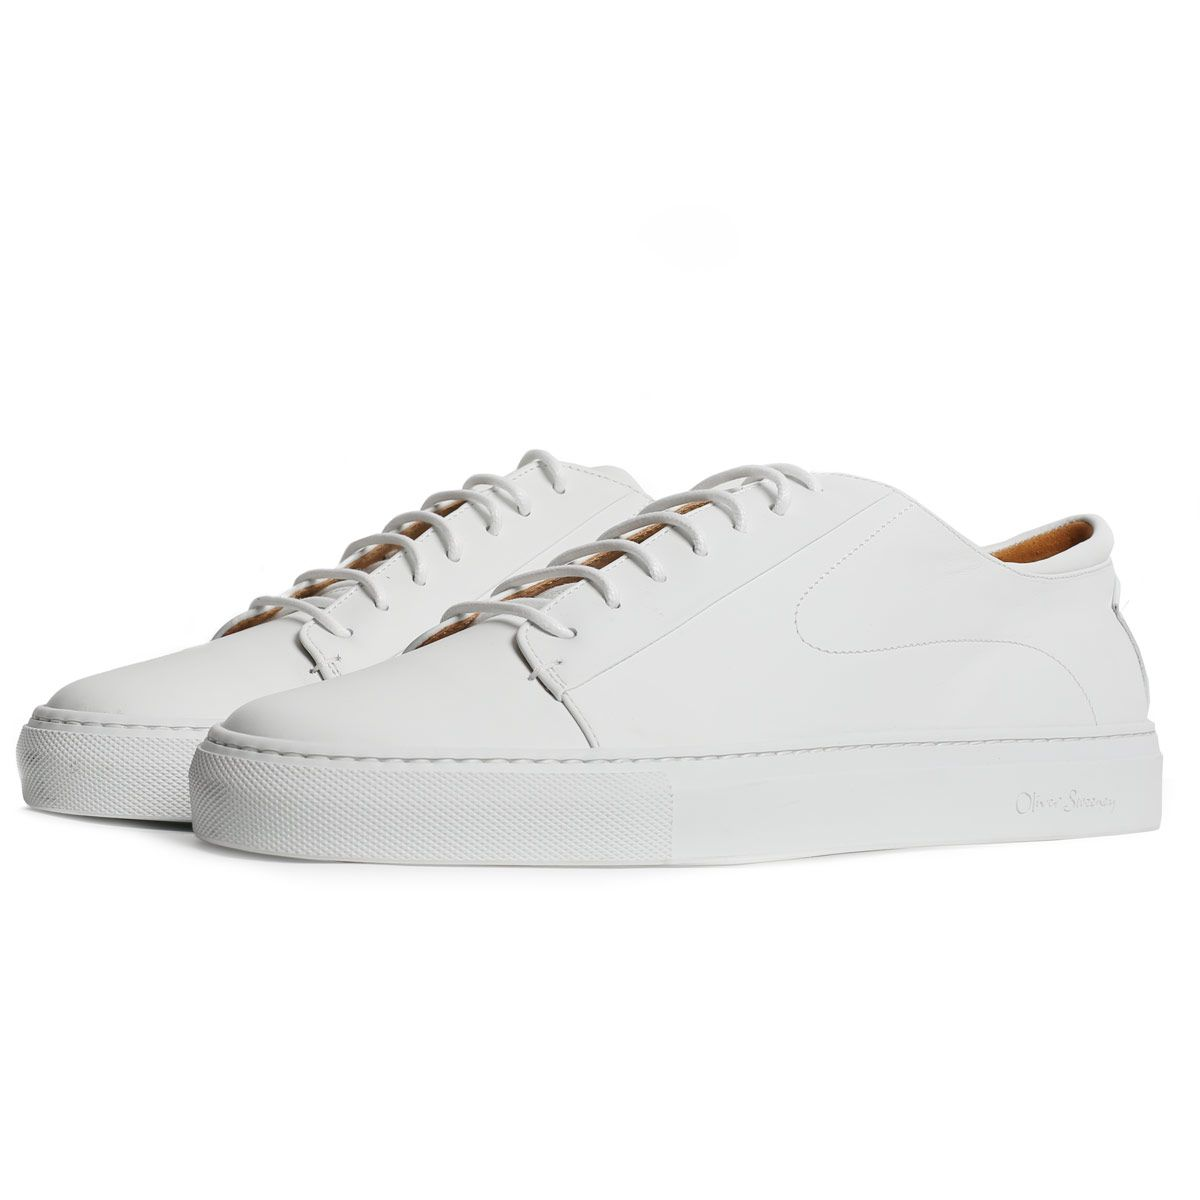 Oliver Sweeney Osimo White - Calf Leather Premium Trainer